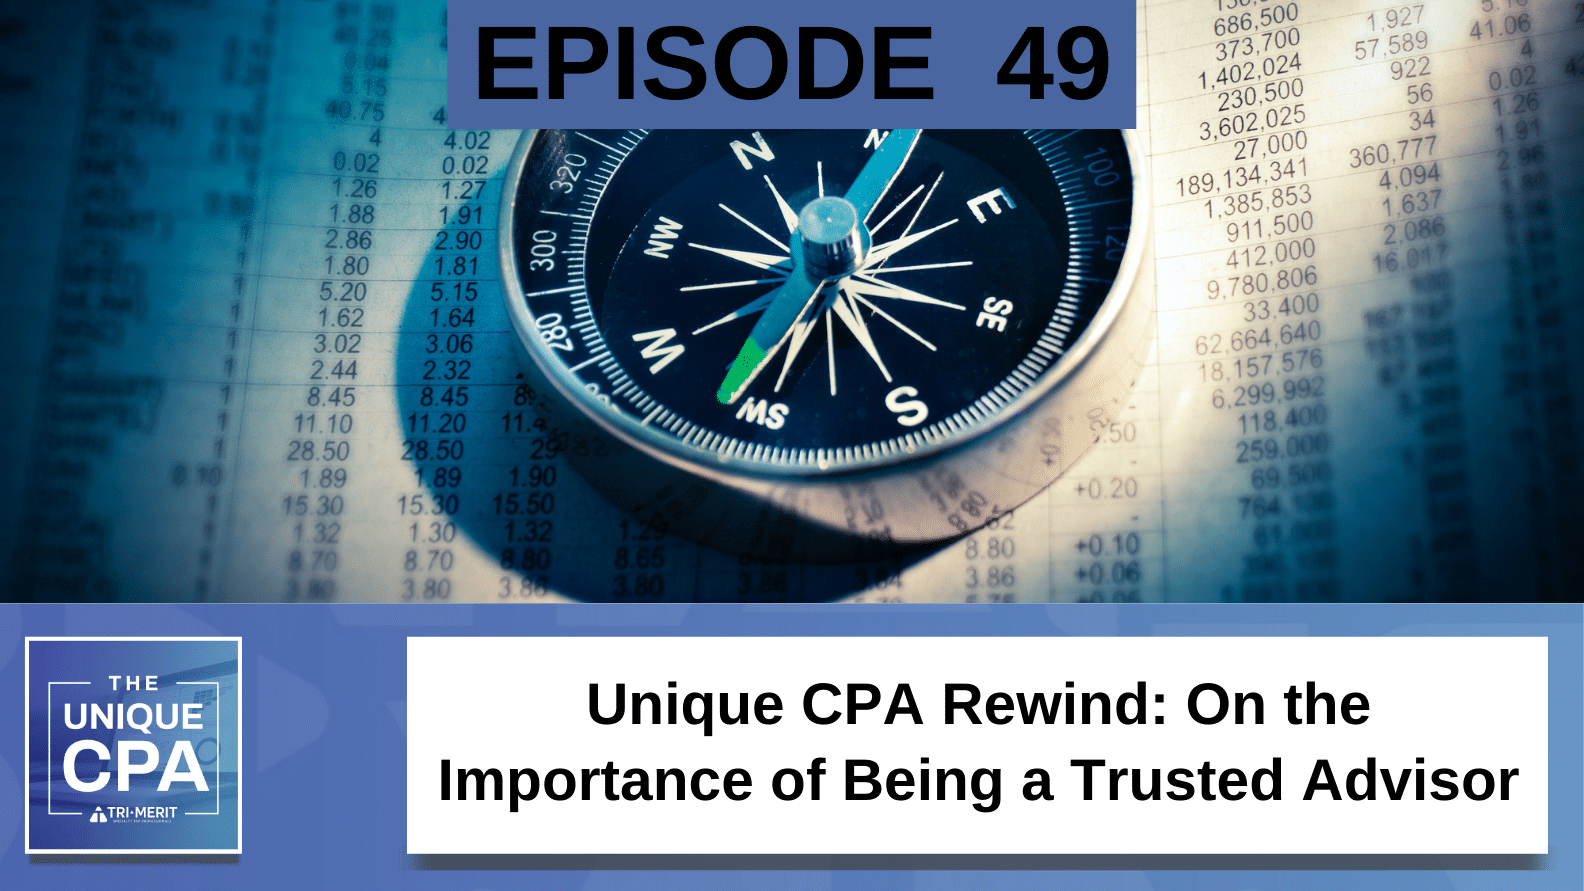 Unique CPA Featured Image Ep 49 Richard Kopelman - Unique CPA Rewind: On the Importance of Being a Trusted Advisor - Tri-Merit